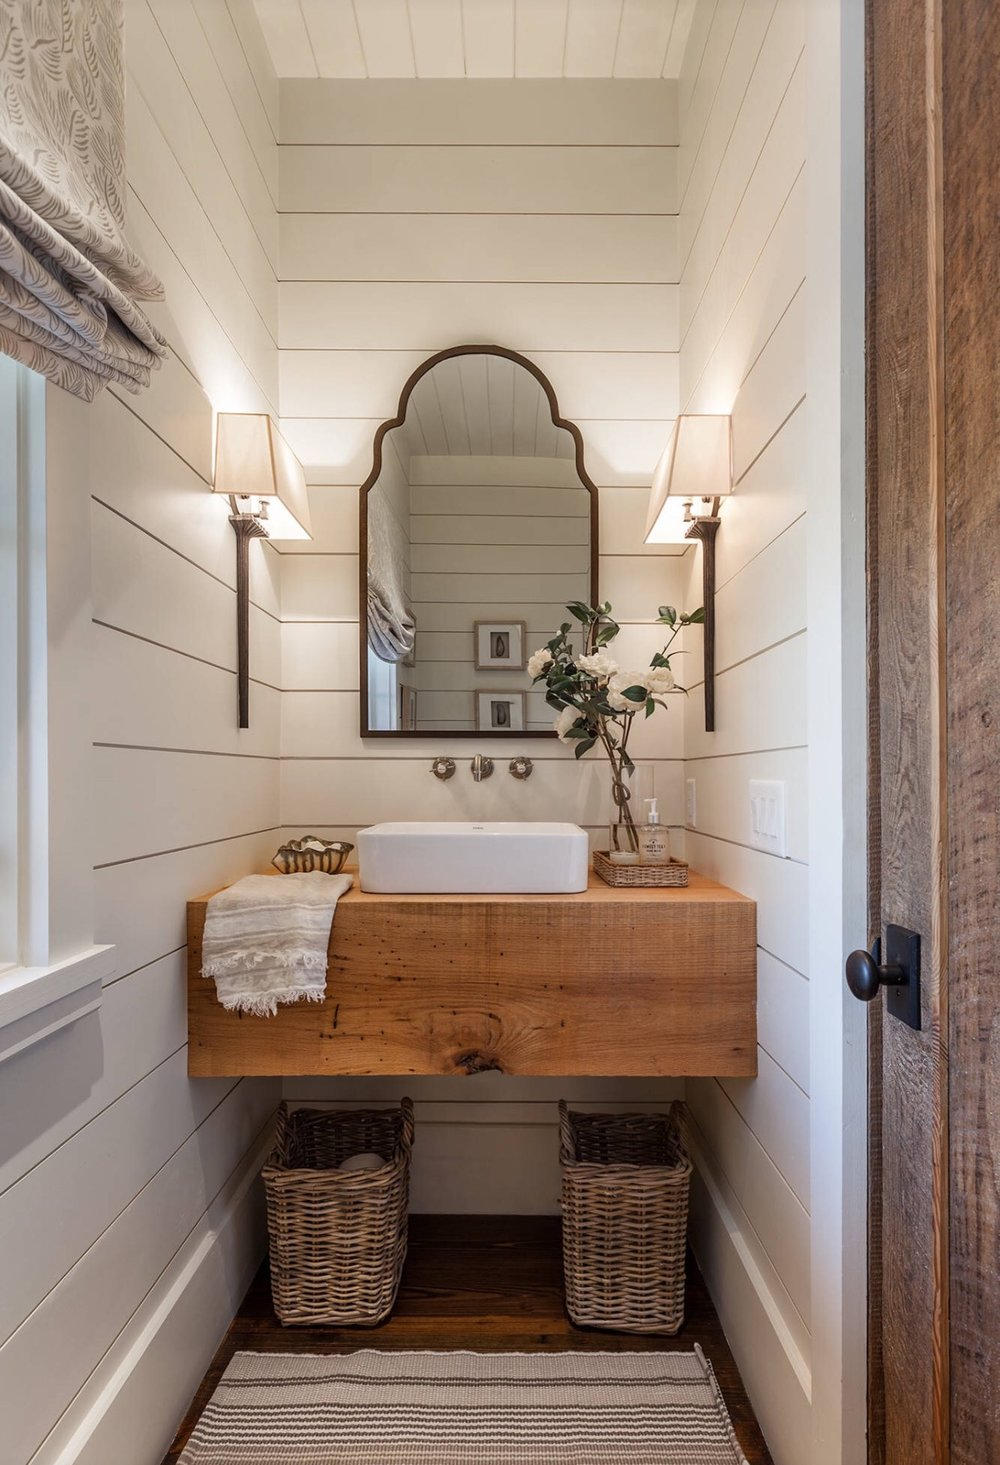 Shiplap Powder Bathroom with Rustic vanity, vessel sink, and shiplap walls